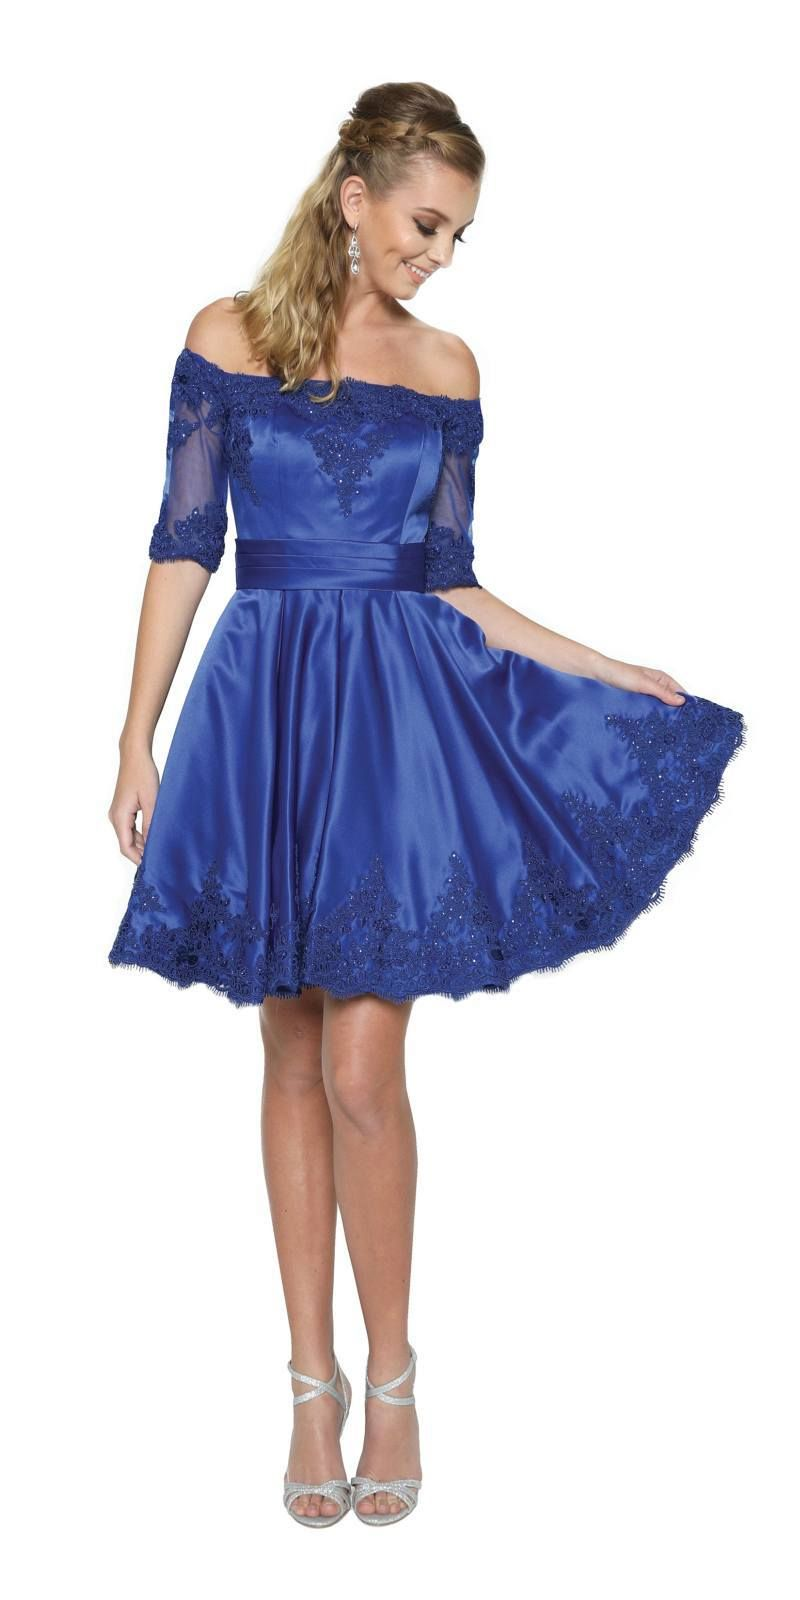 b7ede96ffa8a8 Royal Blue Homecoming Short Dress Off-Shoulder with Appliques in ...